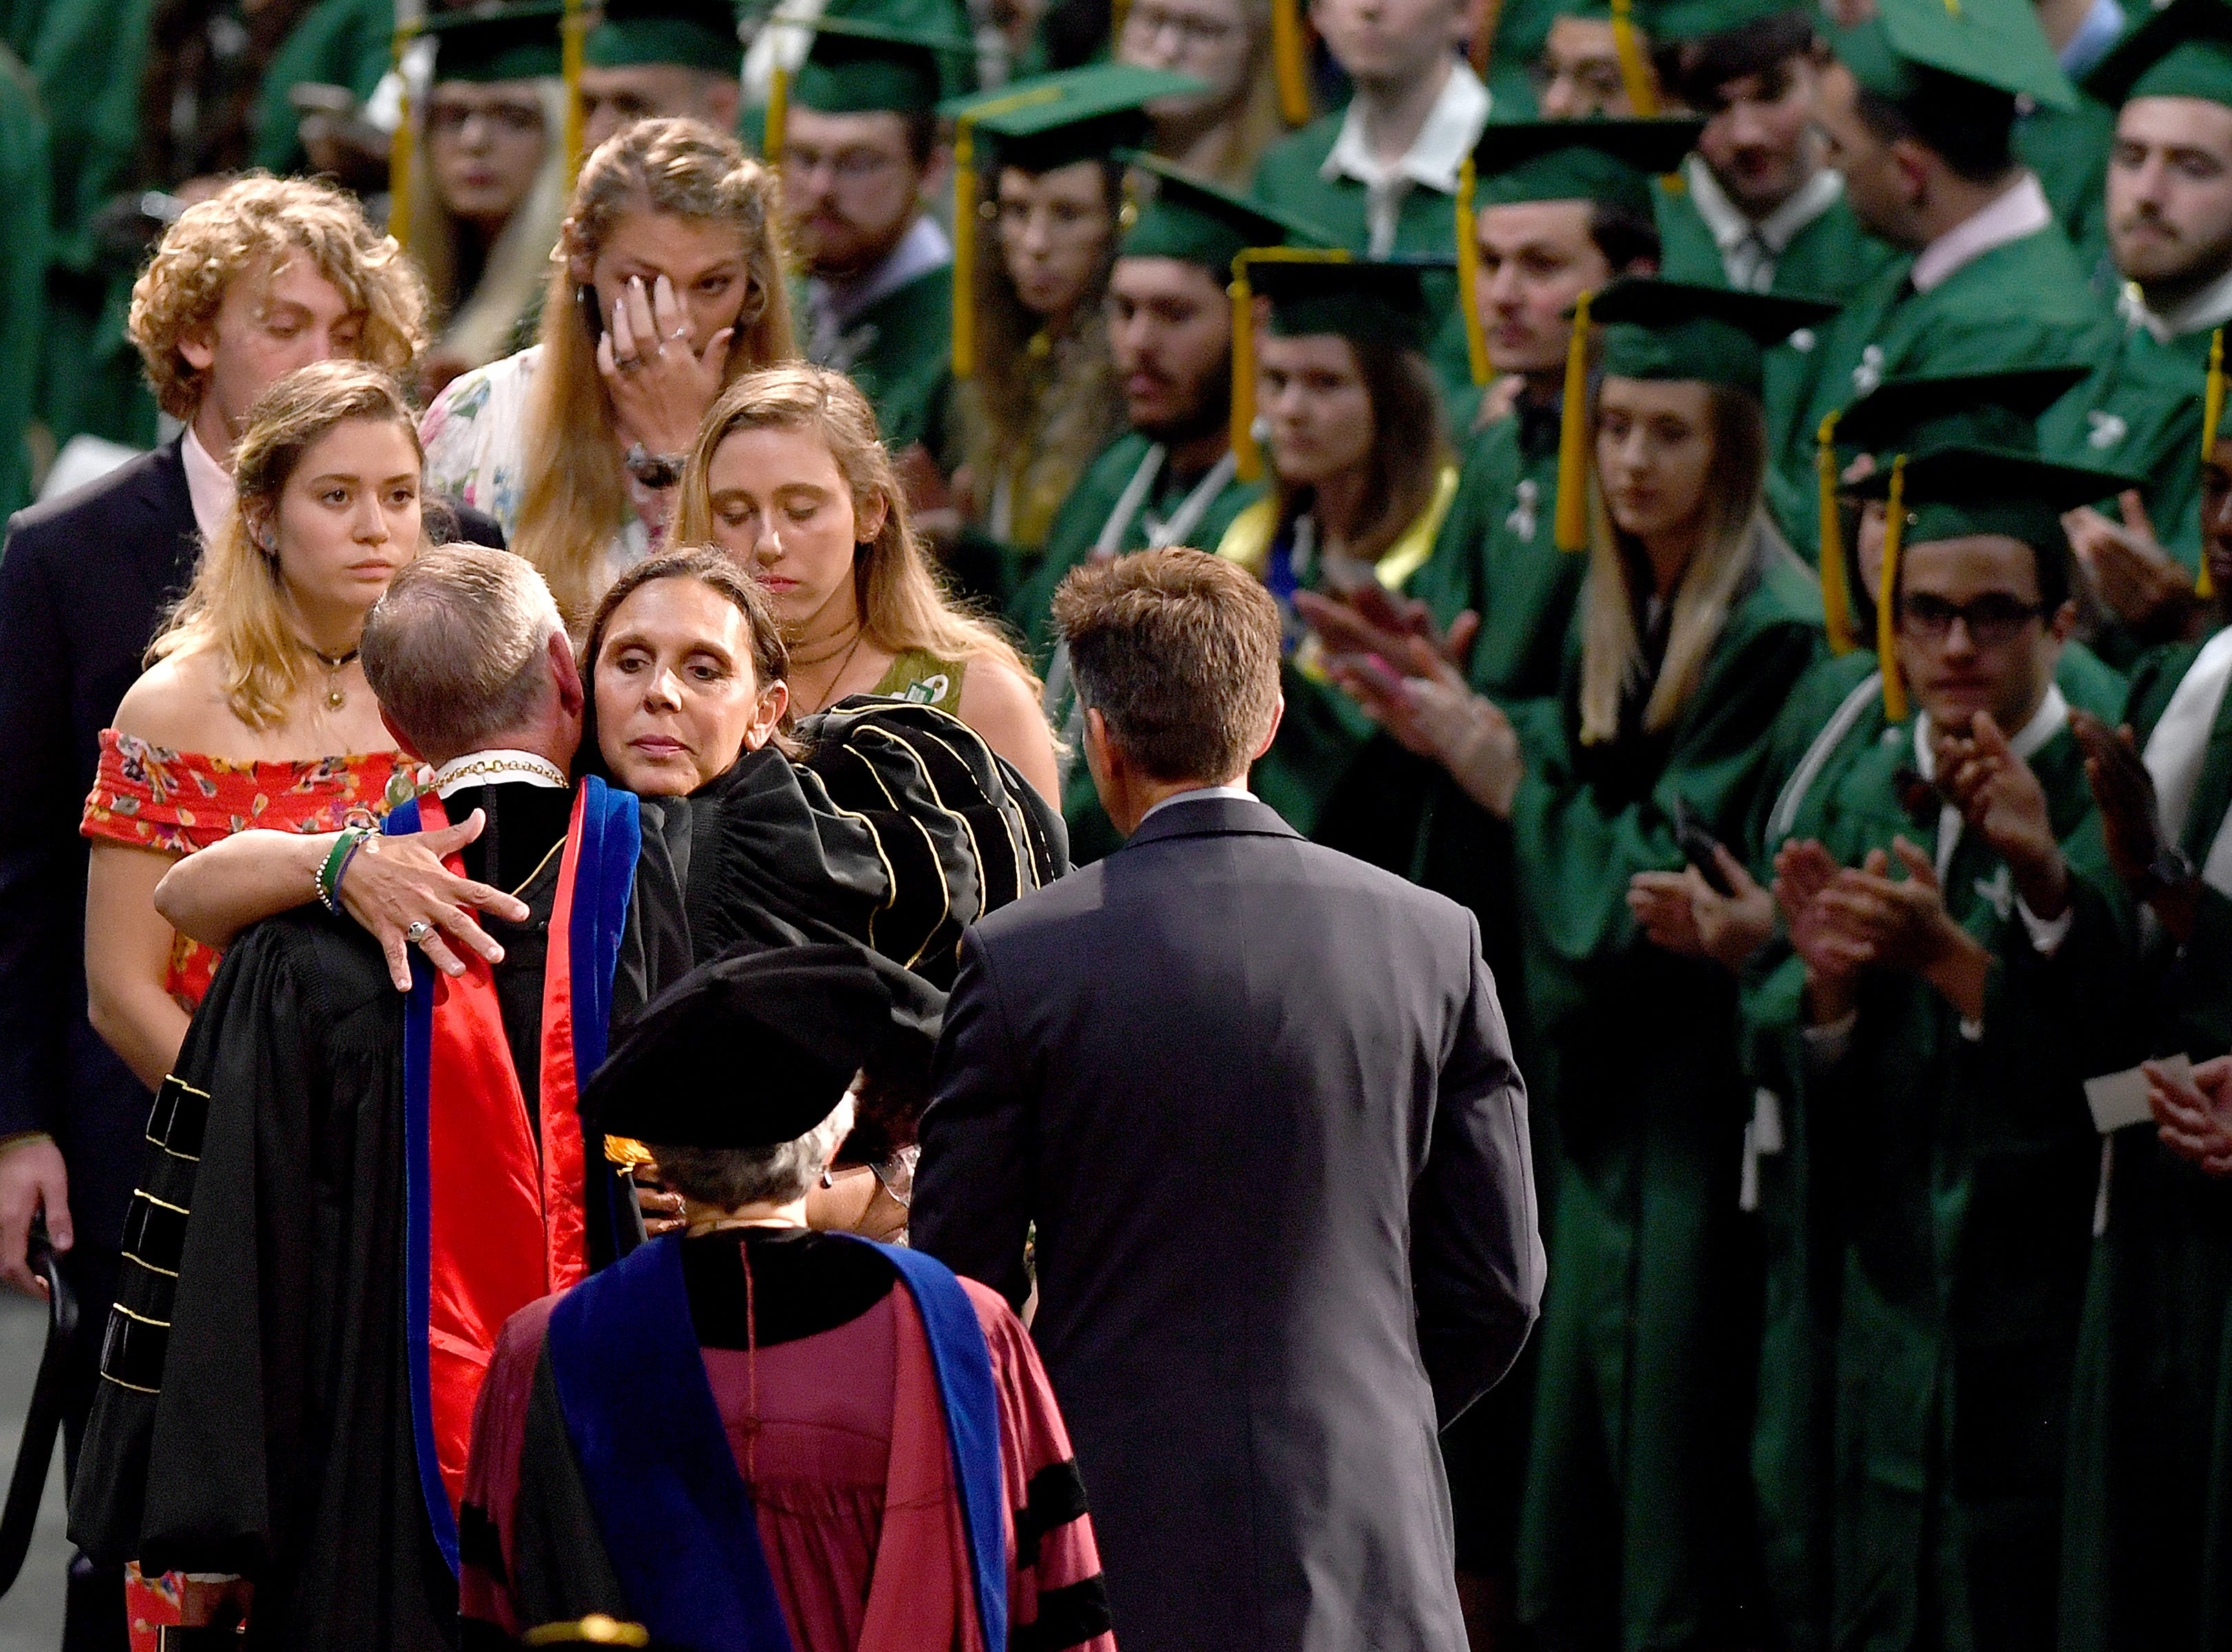 Riley Howell's mother, Natalie Henry-Howell hugs UNC Charlotte Chancellor Philip Dubois as she and her family are honored and her son is awarded with a B.A. in Memoriam during the University's Commencement ceremony for the College of Liberal Arts and Sciences in Charlotte on May 11, 2019. Riley Howell was killed in the April 30 shooting at the university.